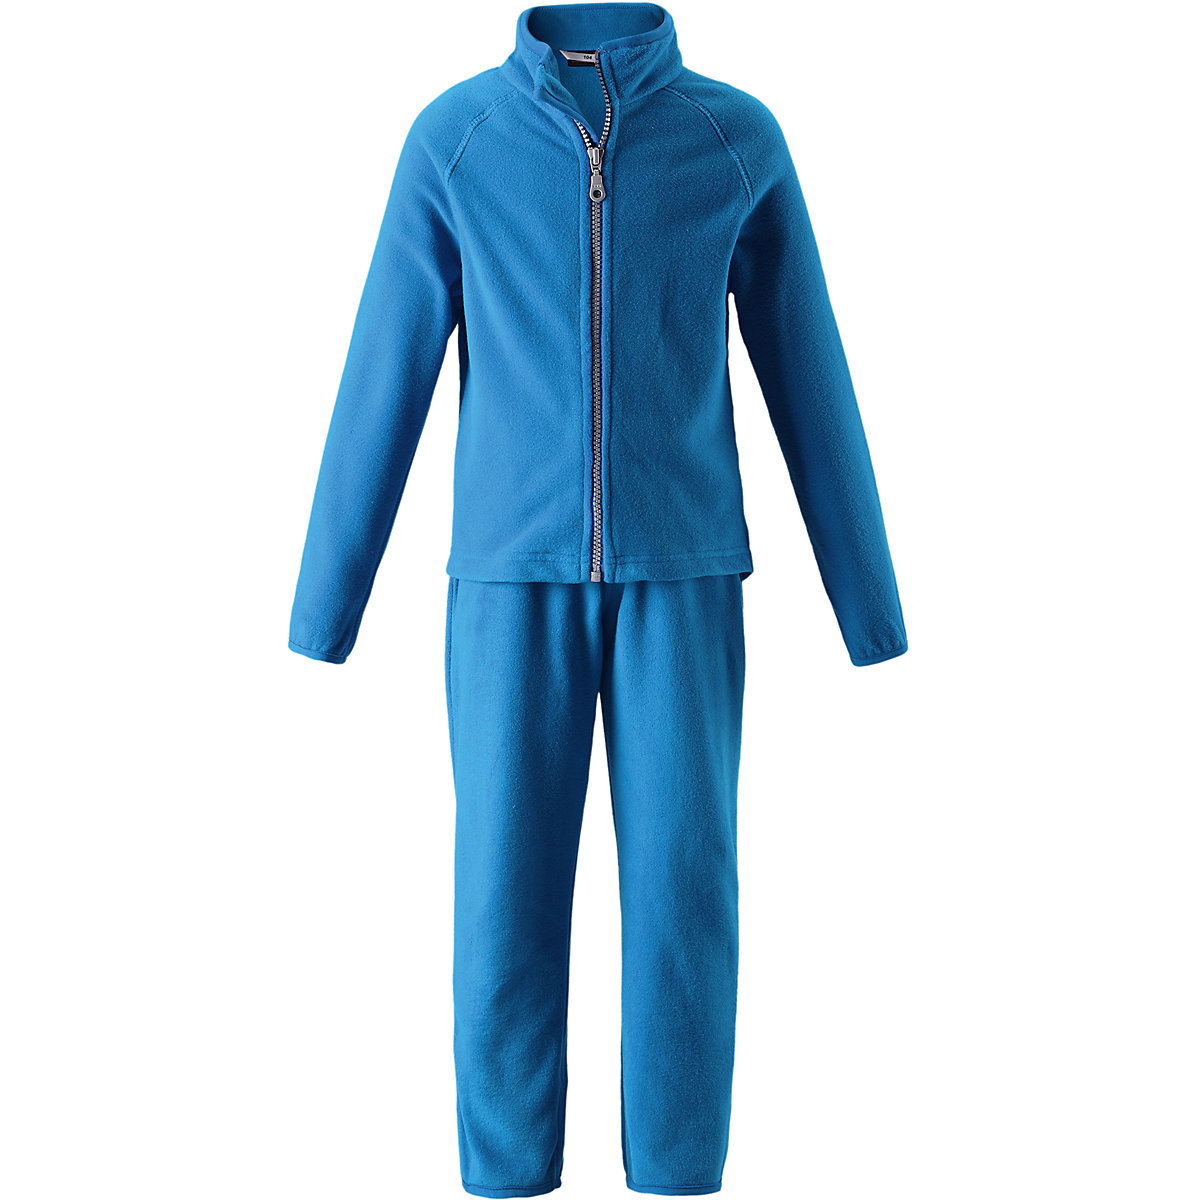 Children's Sets LASSIE for boys and girls 9560246 Winter Track Suit Kids Children clothes Warm children autumn and winter warm clothes boys and girls thick cashmere sweaters